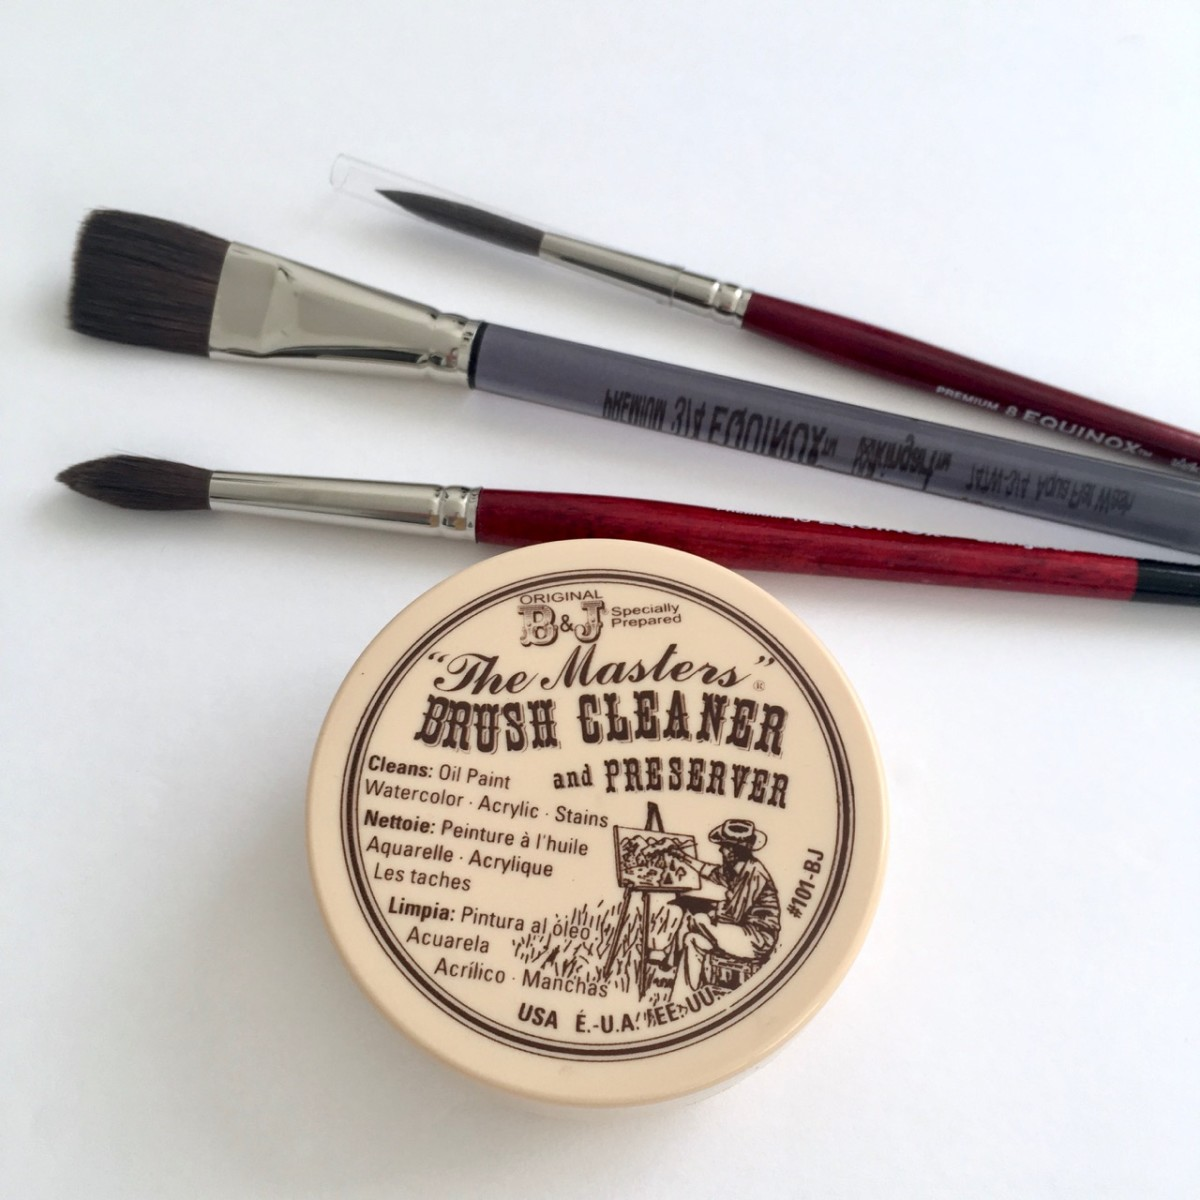 Brush Cleaner for acrylic, watercolor, and oil paint